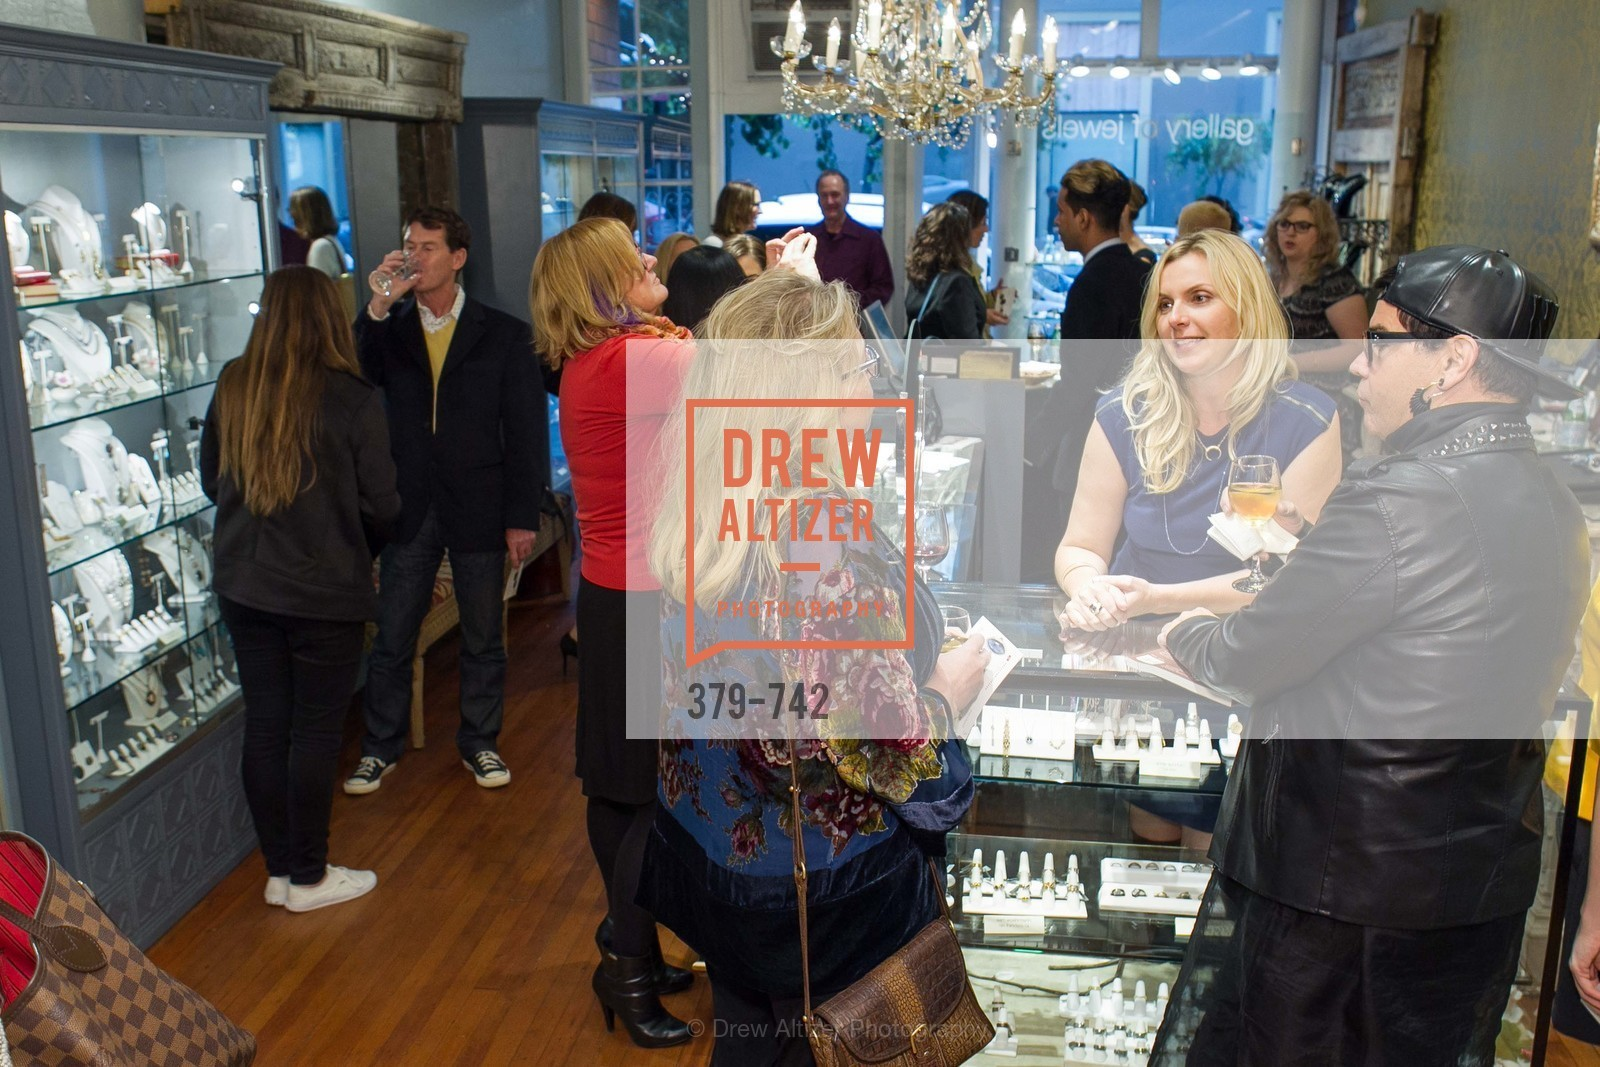 Atmosphere, LUXETIGERS & GALLERY OF JEWELS Benefit for Dress for Success, US, May 21st, 2015,Drew Altizer, Drew Altizer Photography, full-service event agency, private events, San Francisco photographer, photographer California